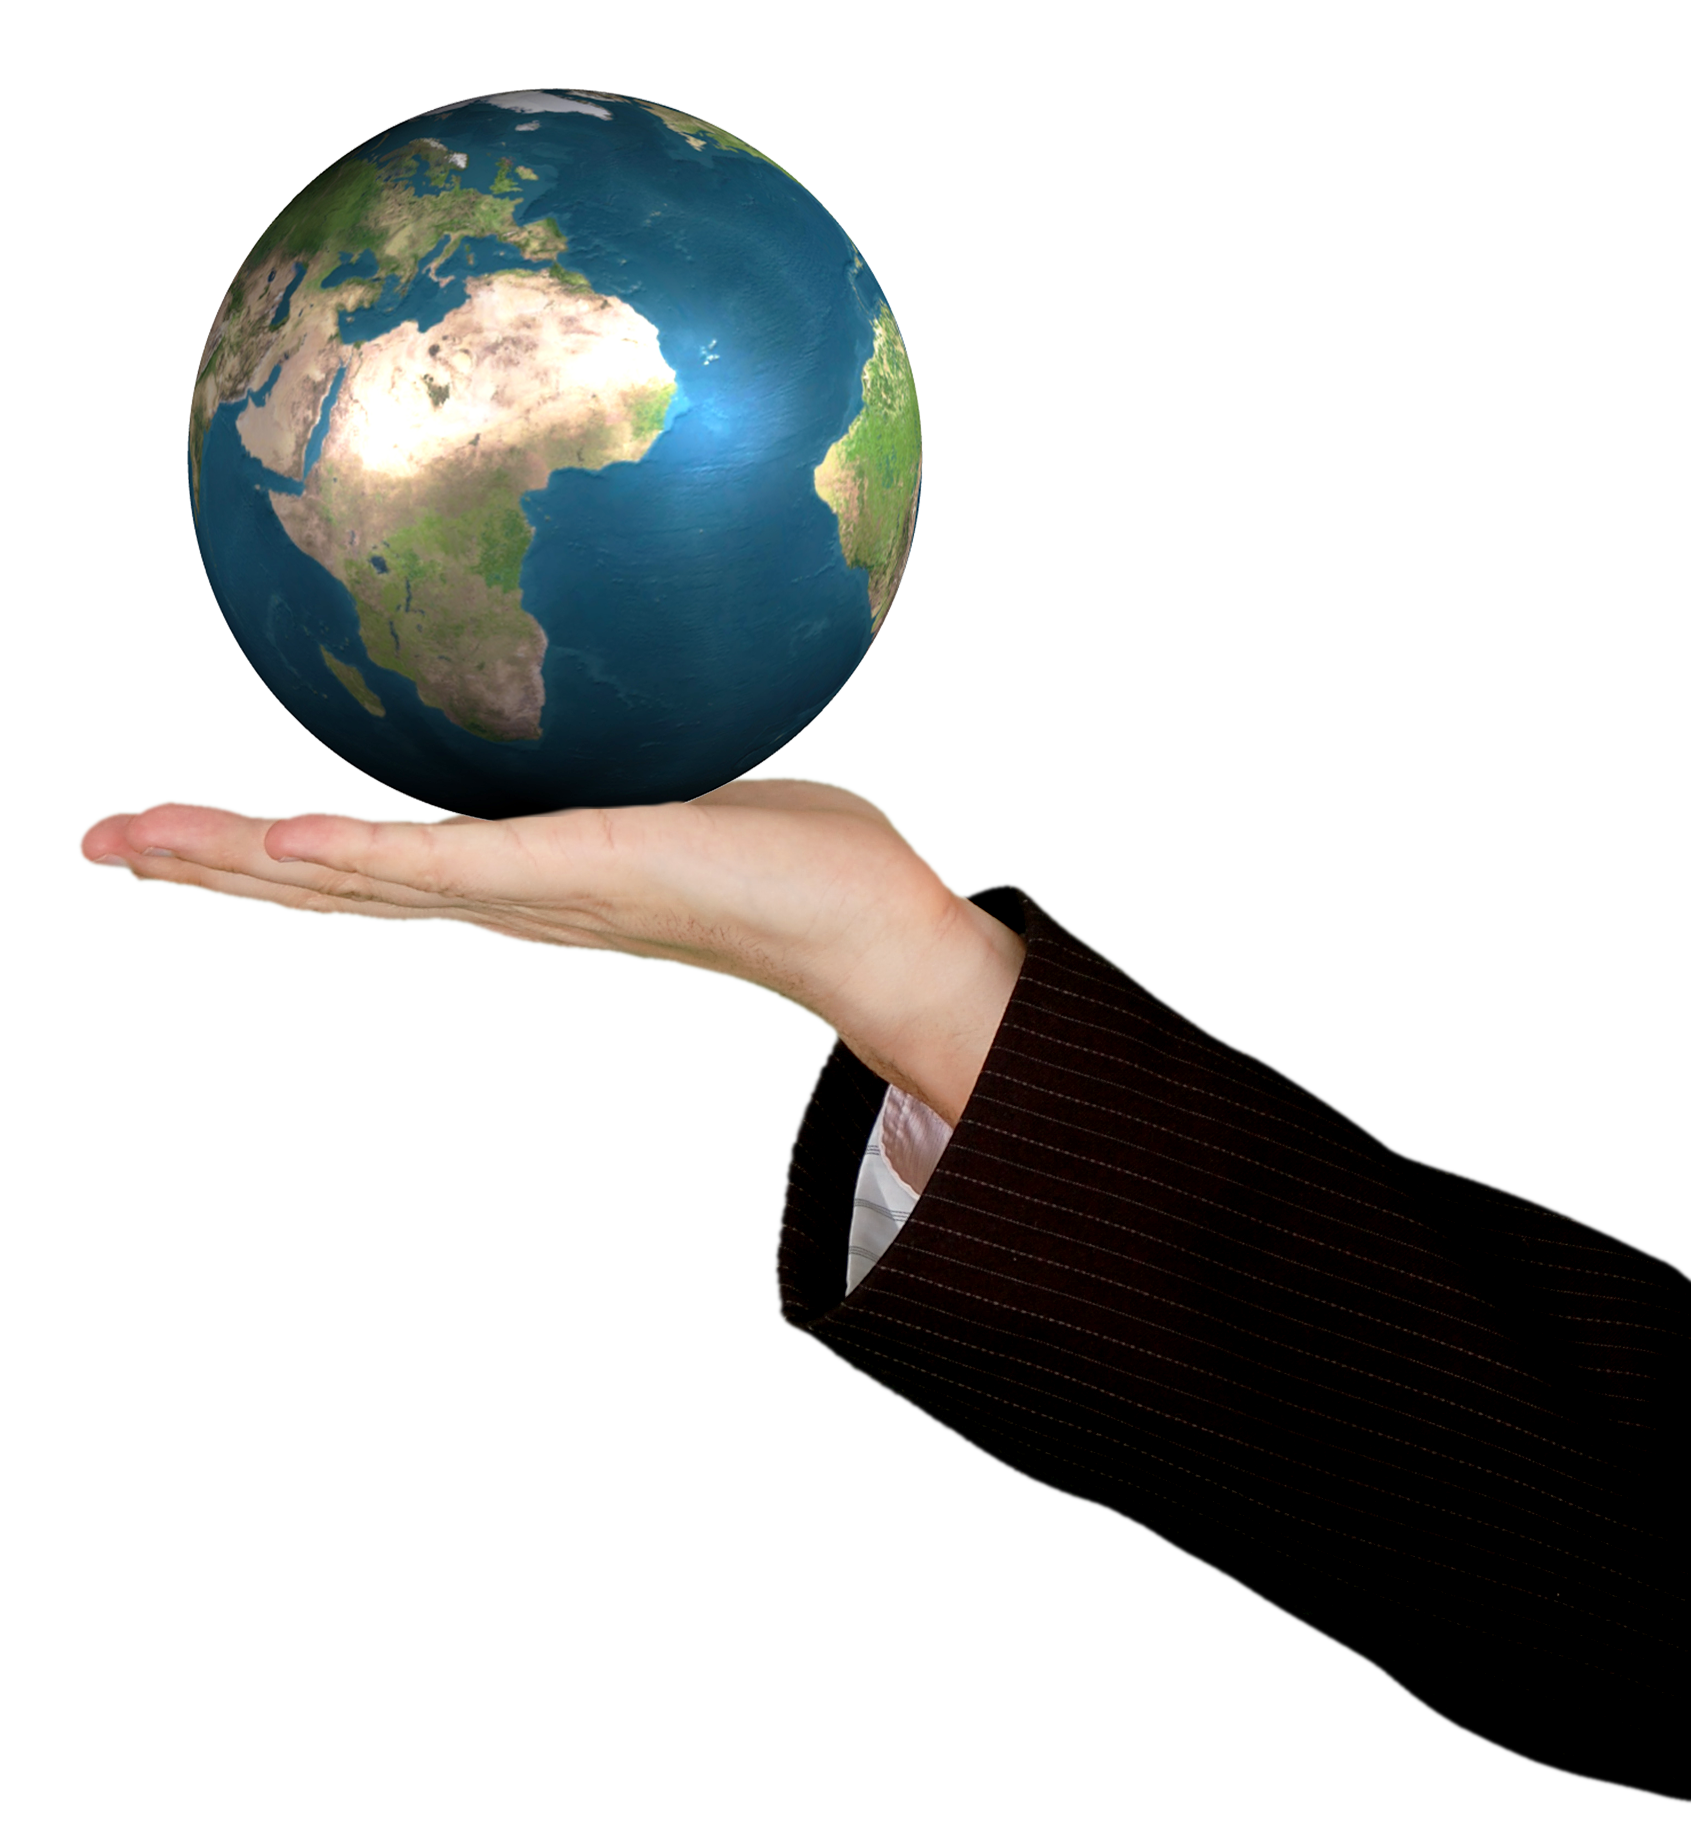 clipart transparent download Business Woman Holding The World PNG Image